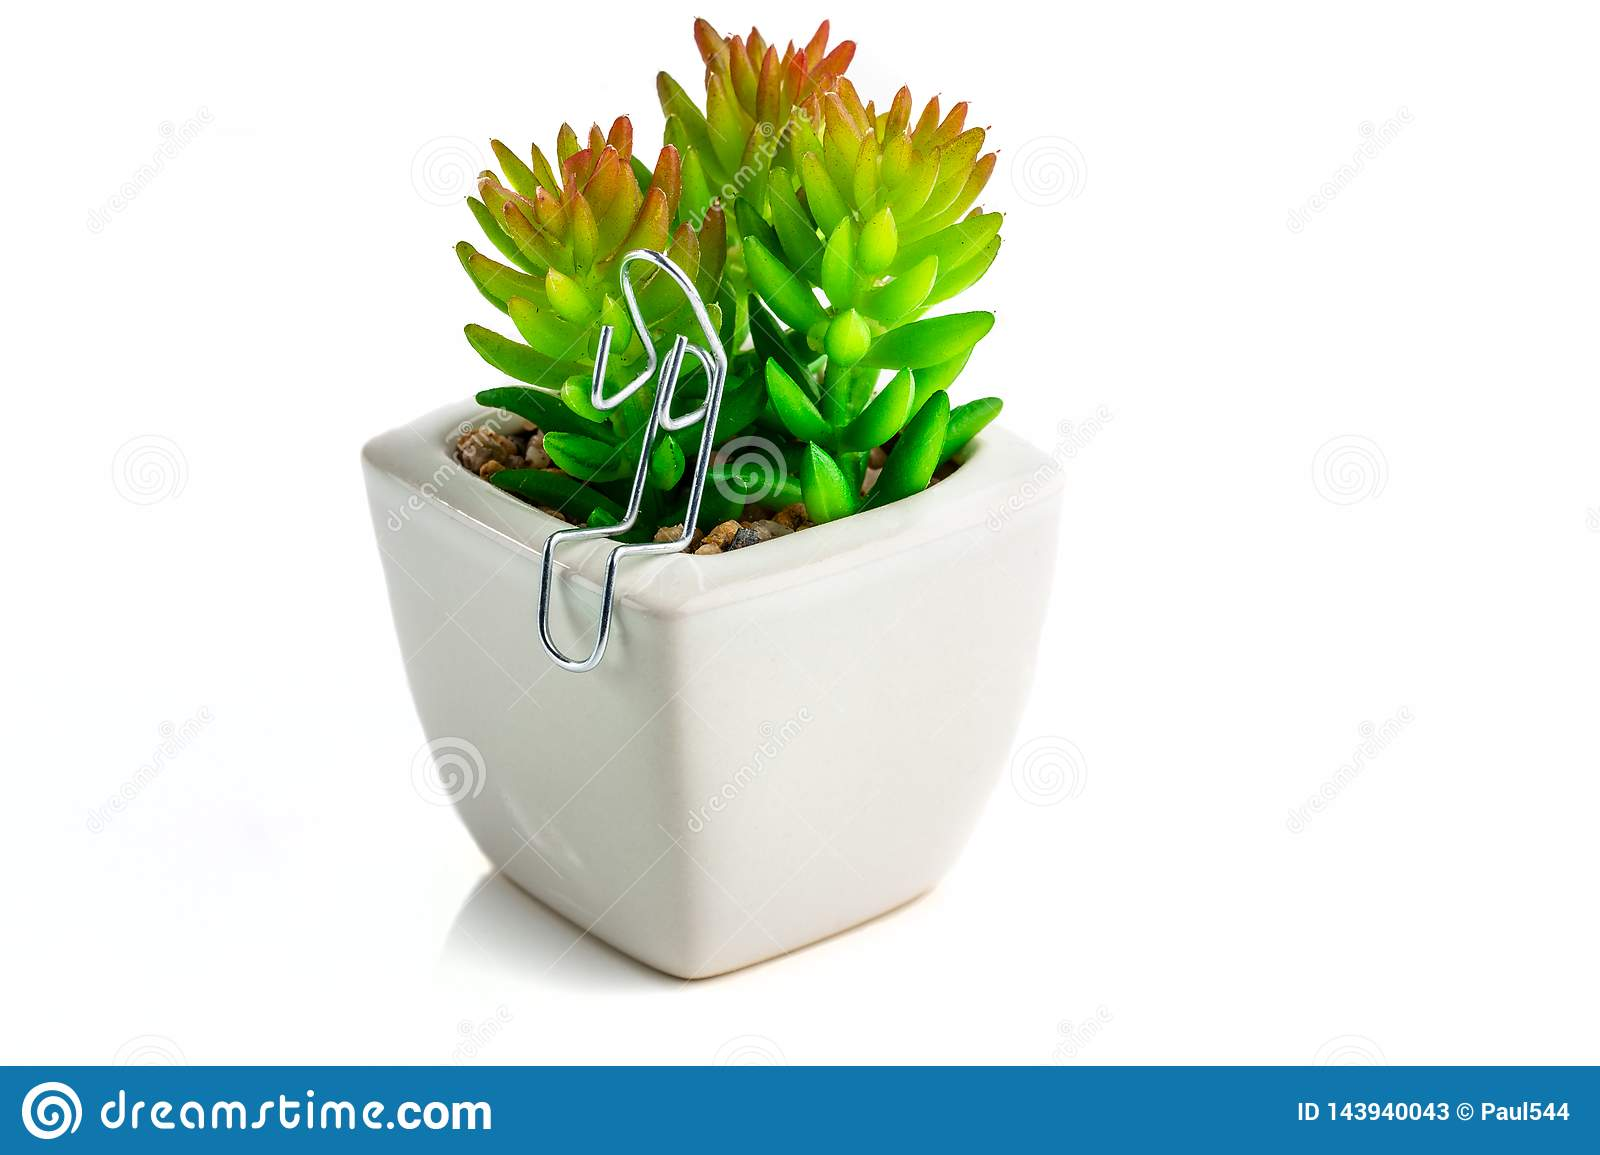 Paper Clip Character sat with a Cactus Plant